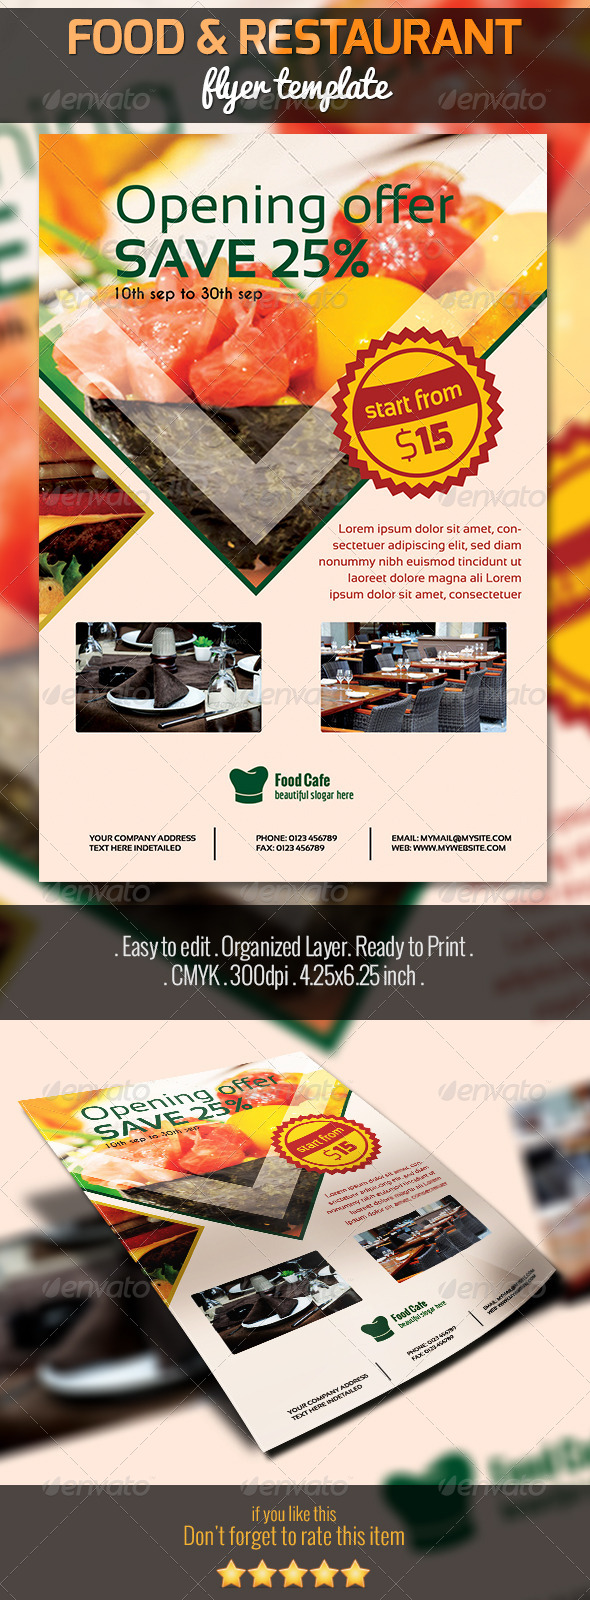 Food and Restaurant Flyer